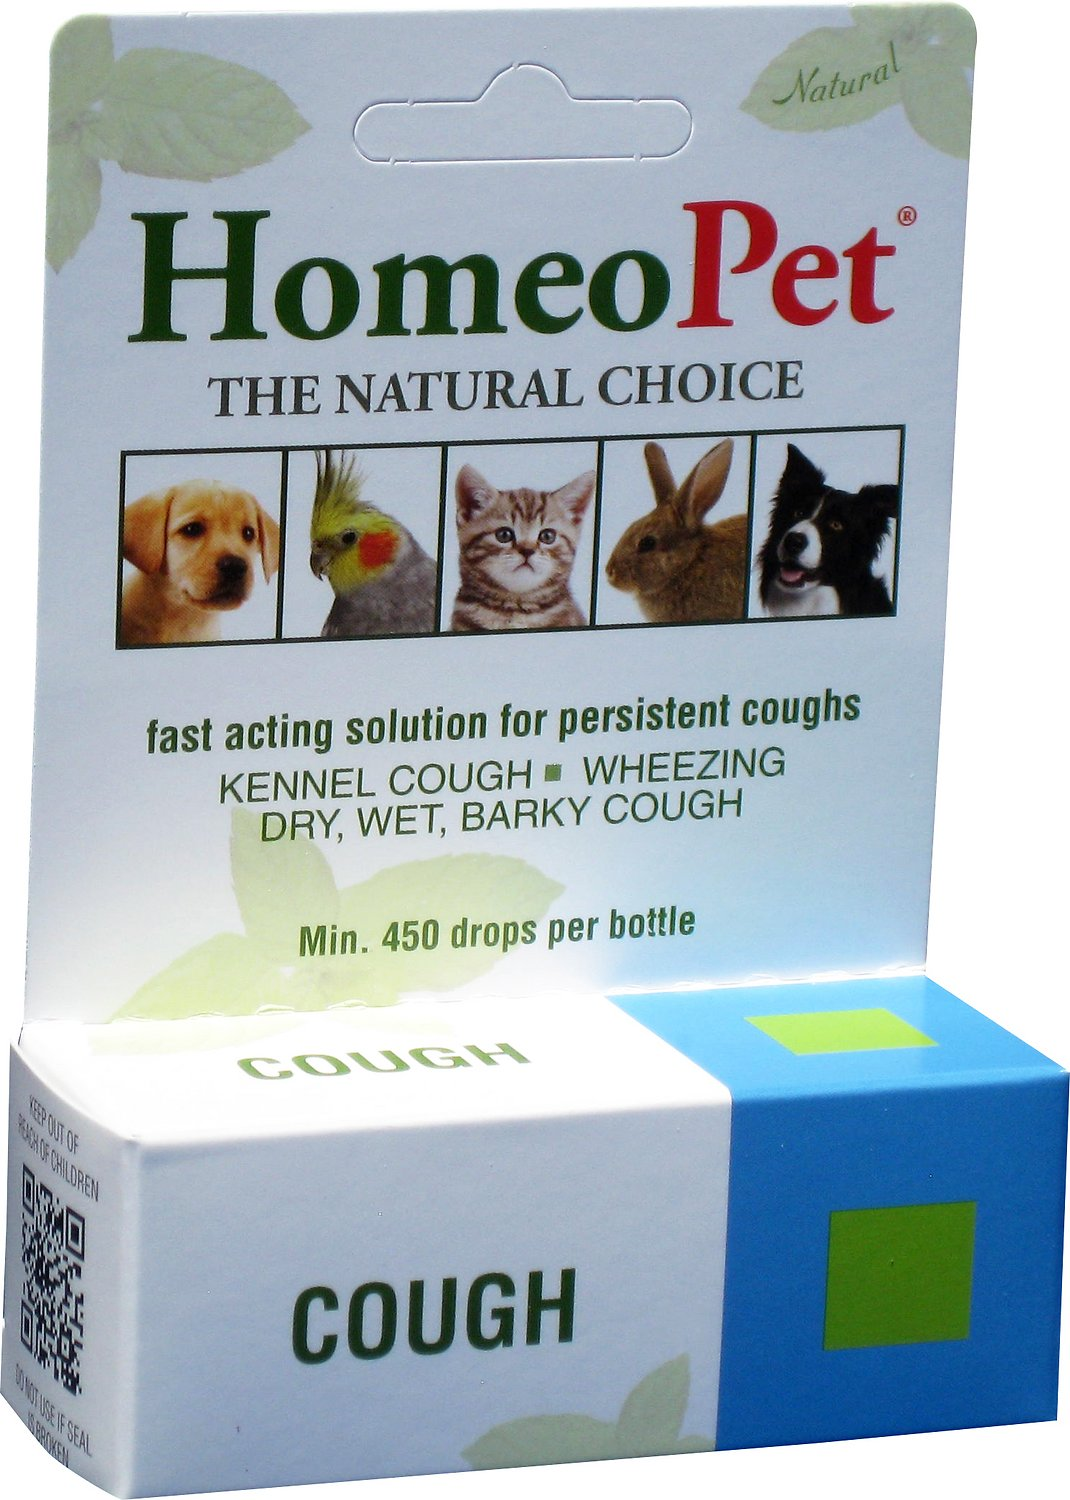 HomeoPet Cough Dog, Cat, Bird & Small Animal Supplement, 450 drops